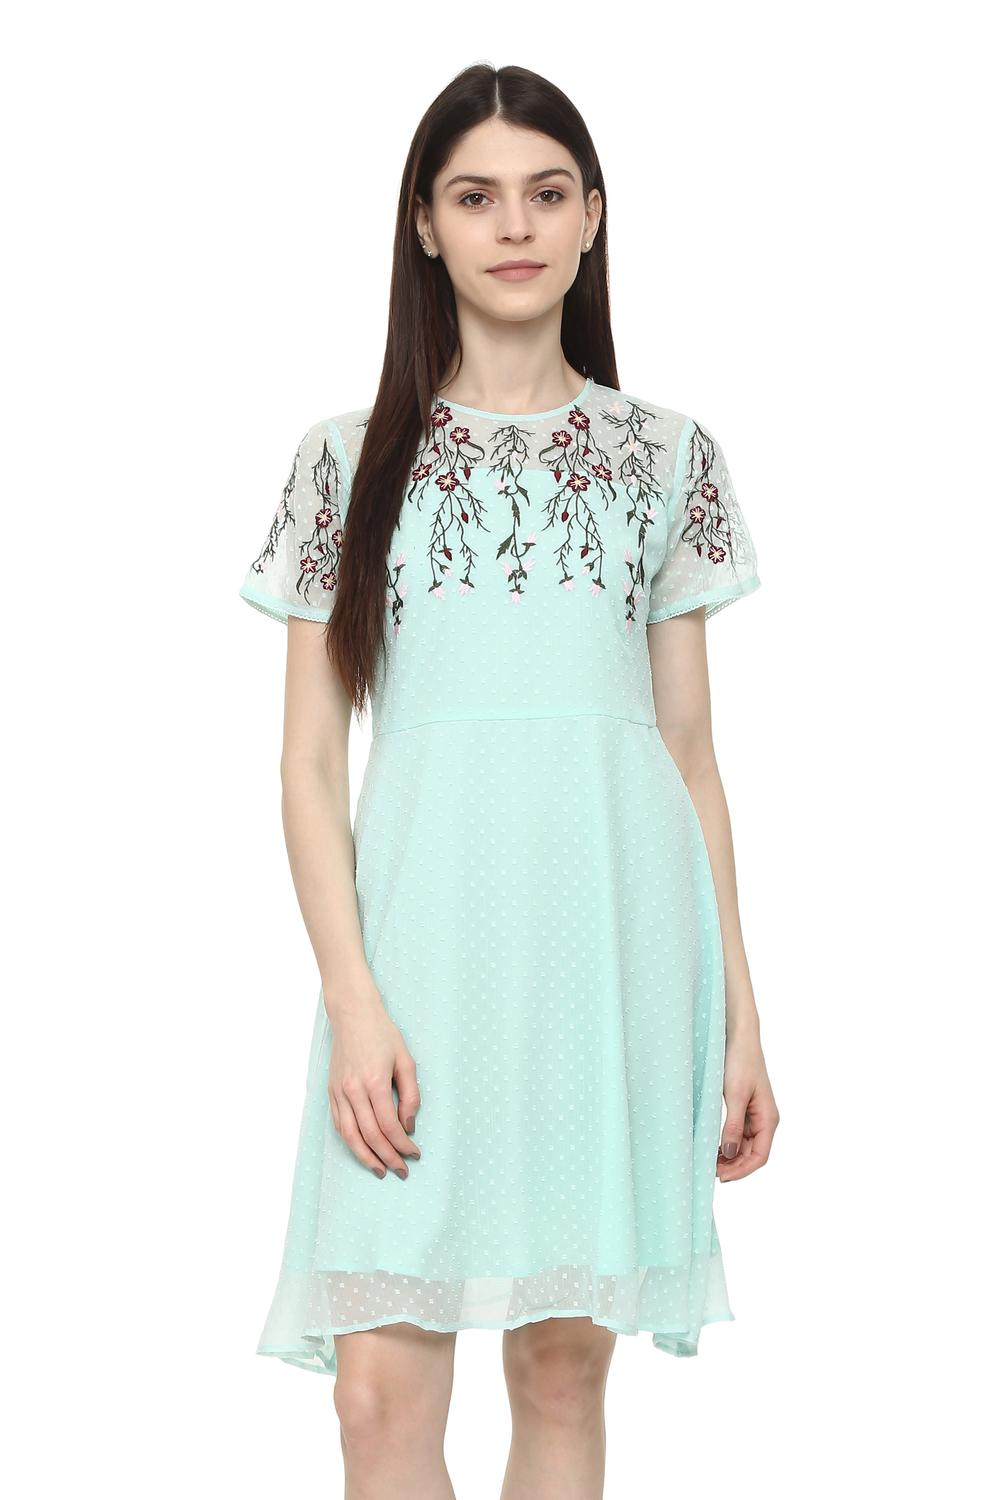 fc52746e2393b Solly Dresses, Allen Solly Blue Dress for Women at Allensolly.com